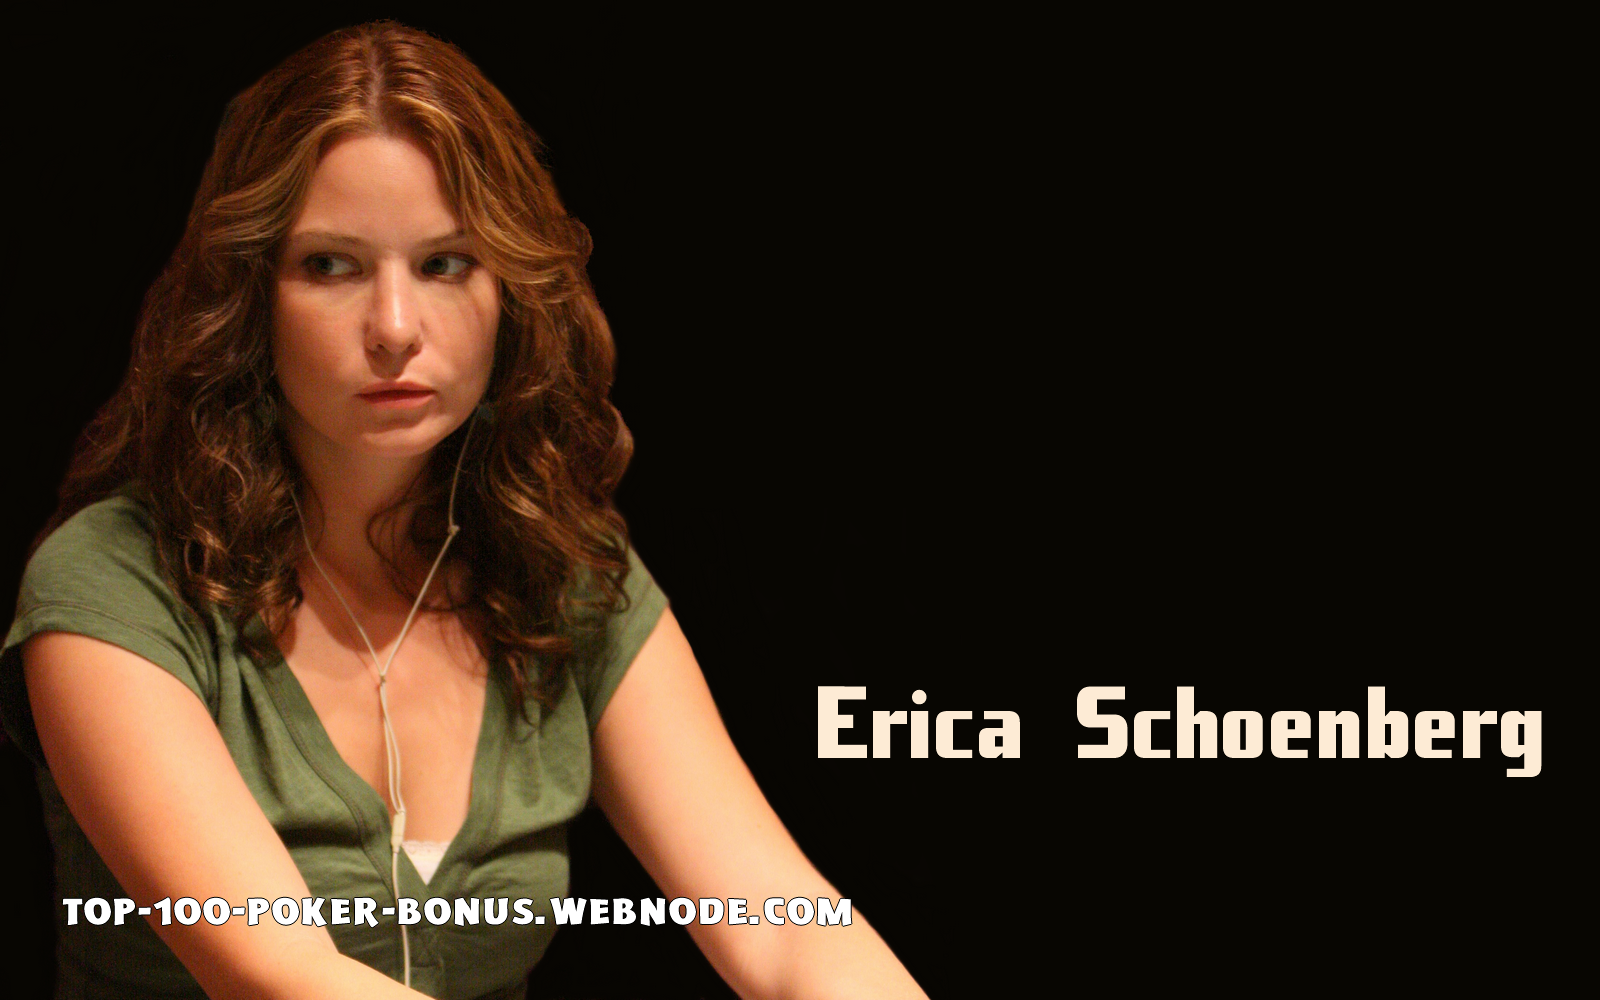 Erica Schoenberg | All the action from the casino floor: news, views and more